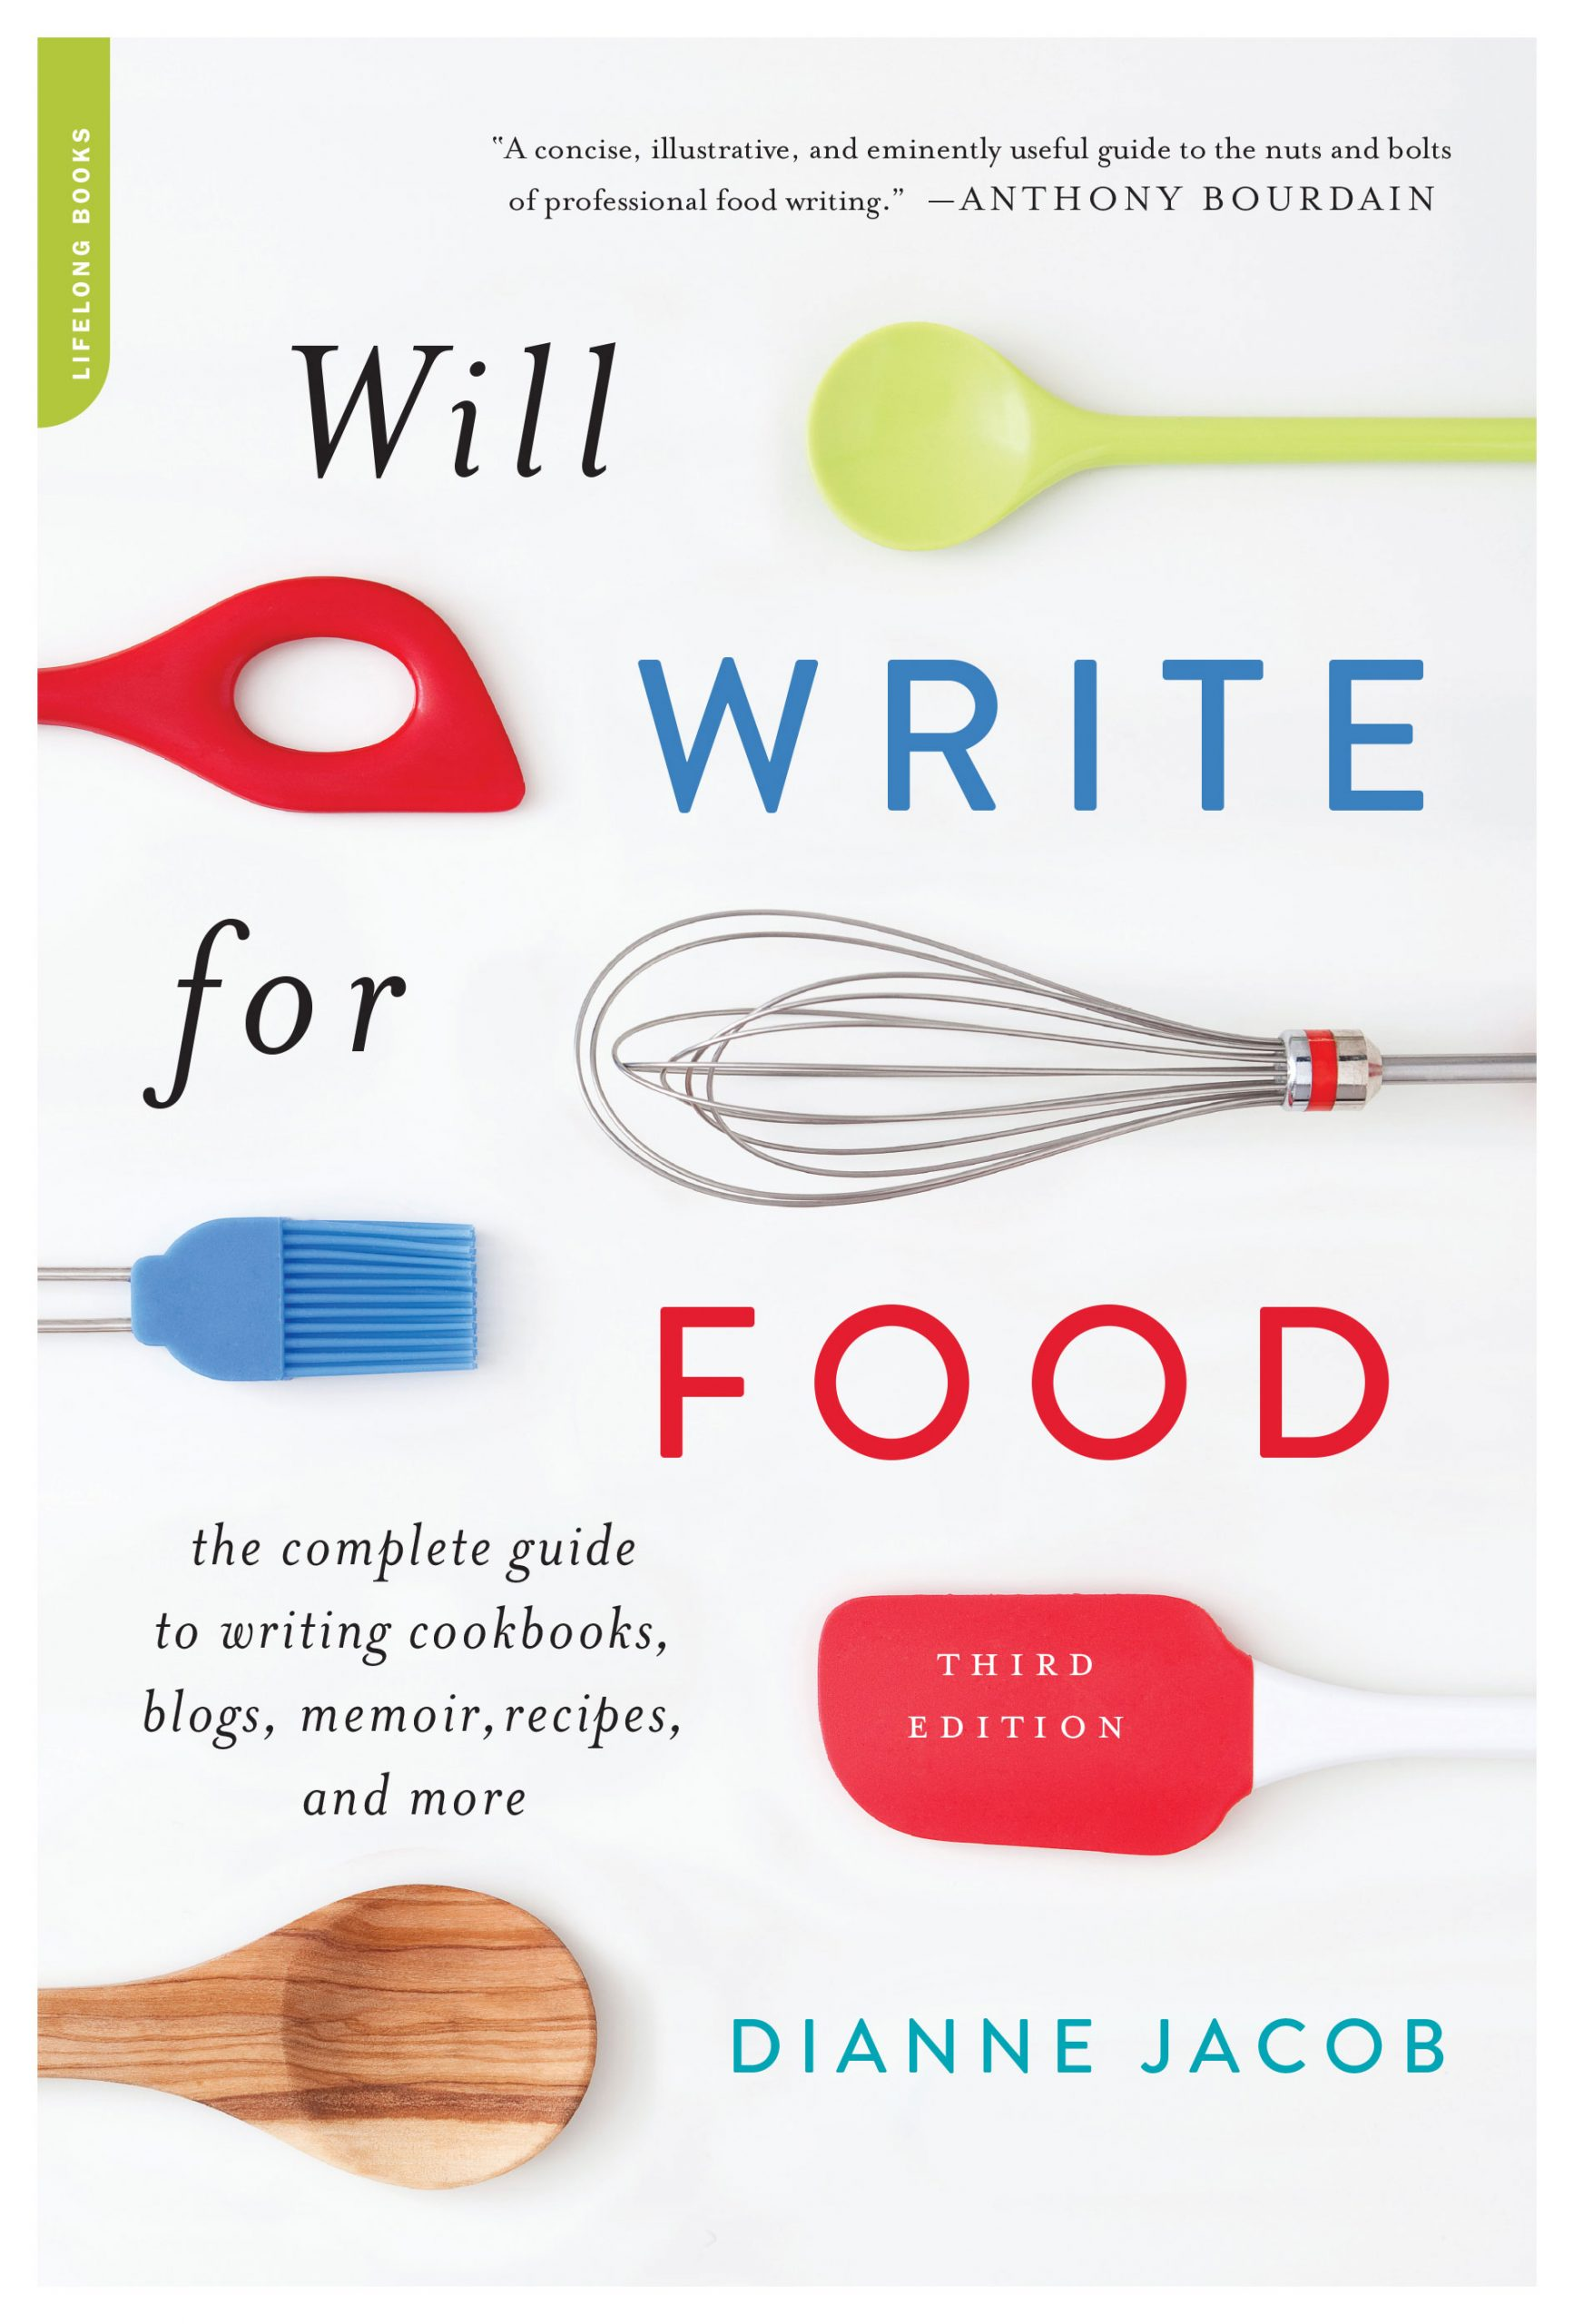 Will Write for Food third edition